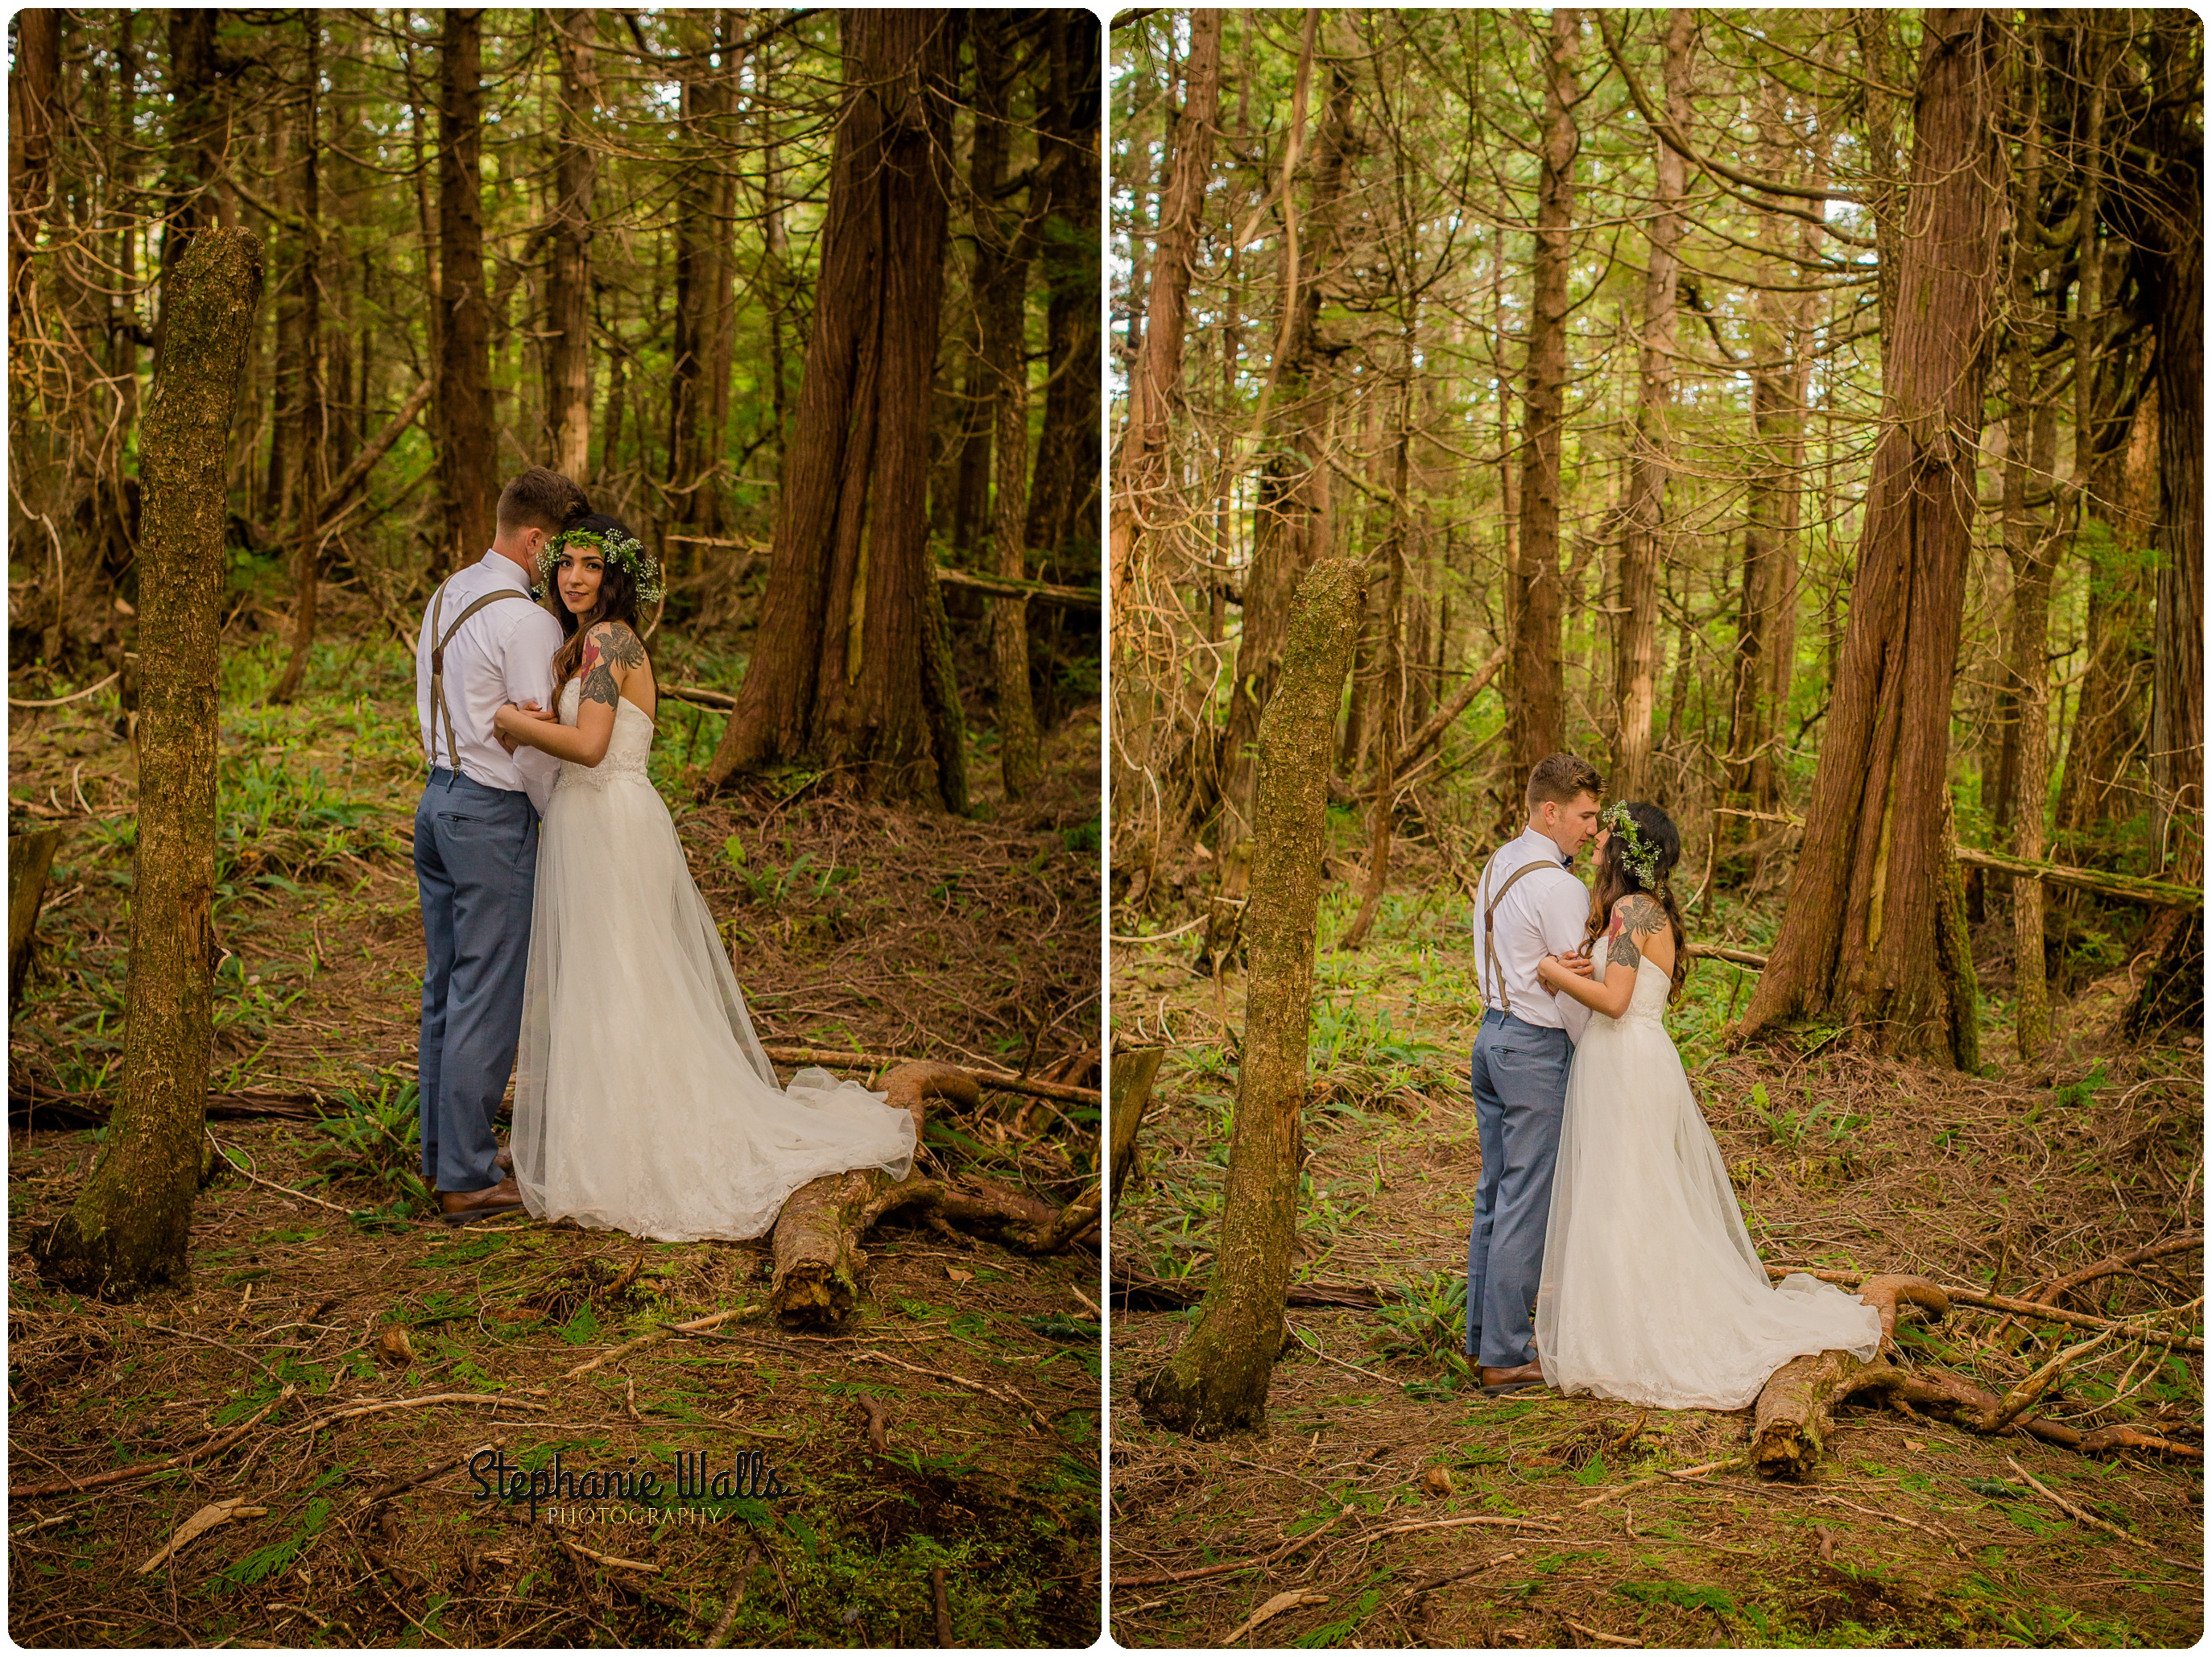 Belfour 449 INTIMATE CLIFFSIDE ELOPEMENT | CAPE FLATTERY NEAH BAY | STEPHANIE WALLS PHOTOGRAPHY